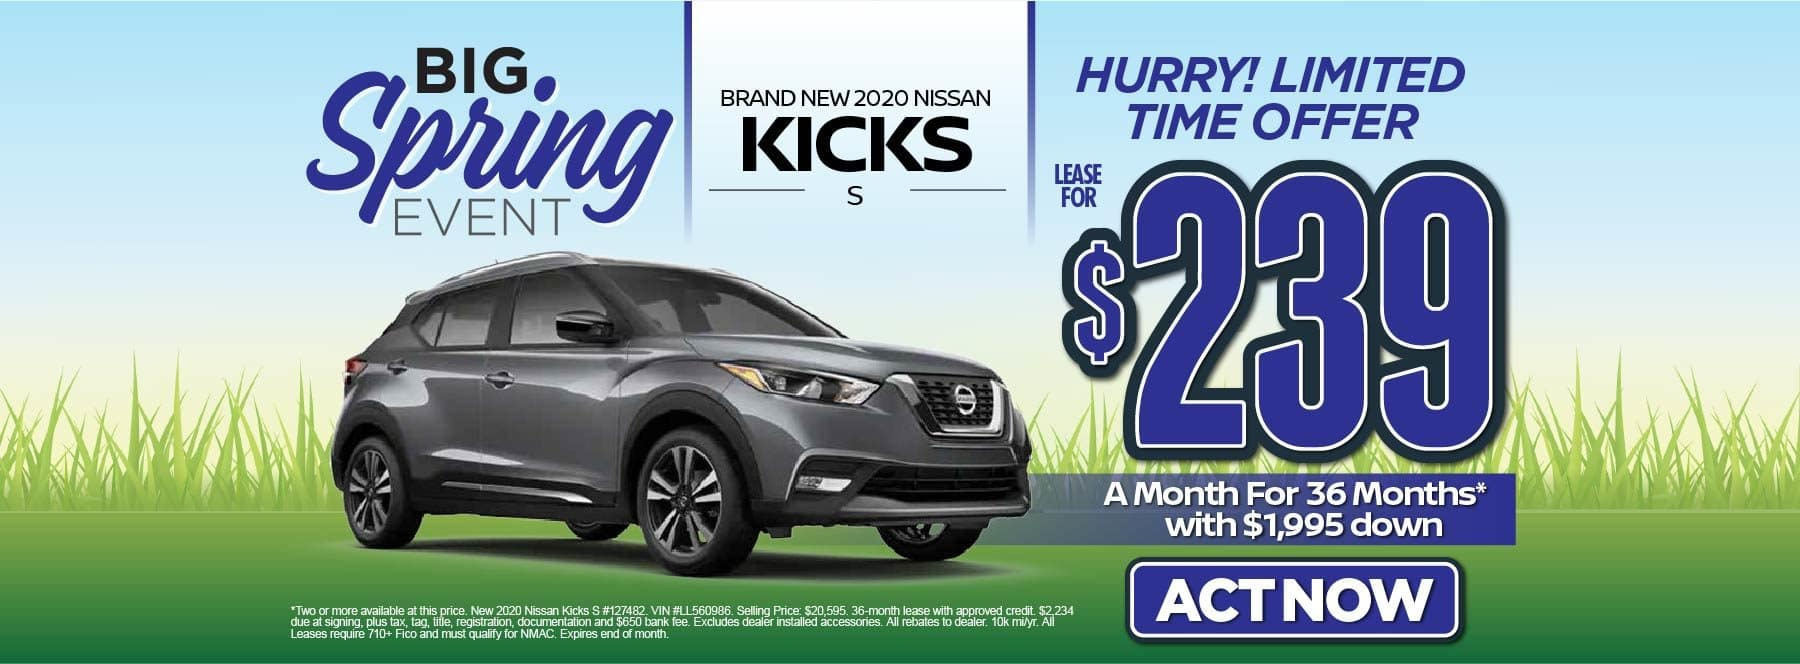 New 2020 Nissan Kicks S – Lease for $239/mo for 36 months with $1,995 Down* Act now.